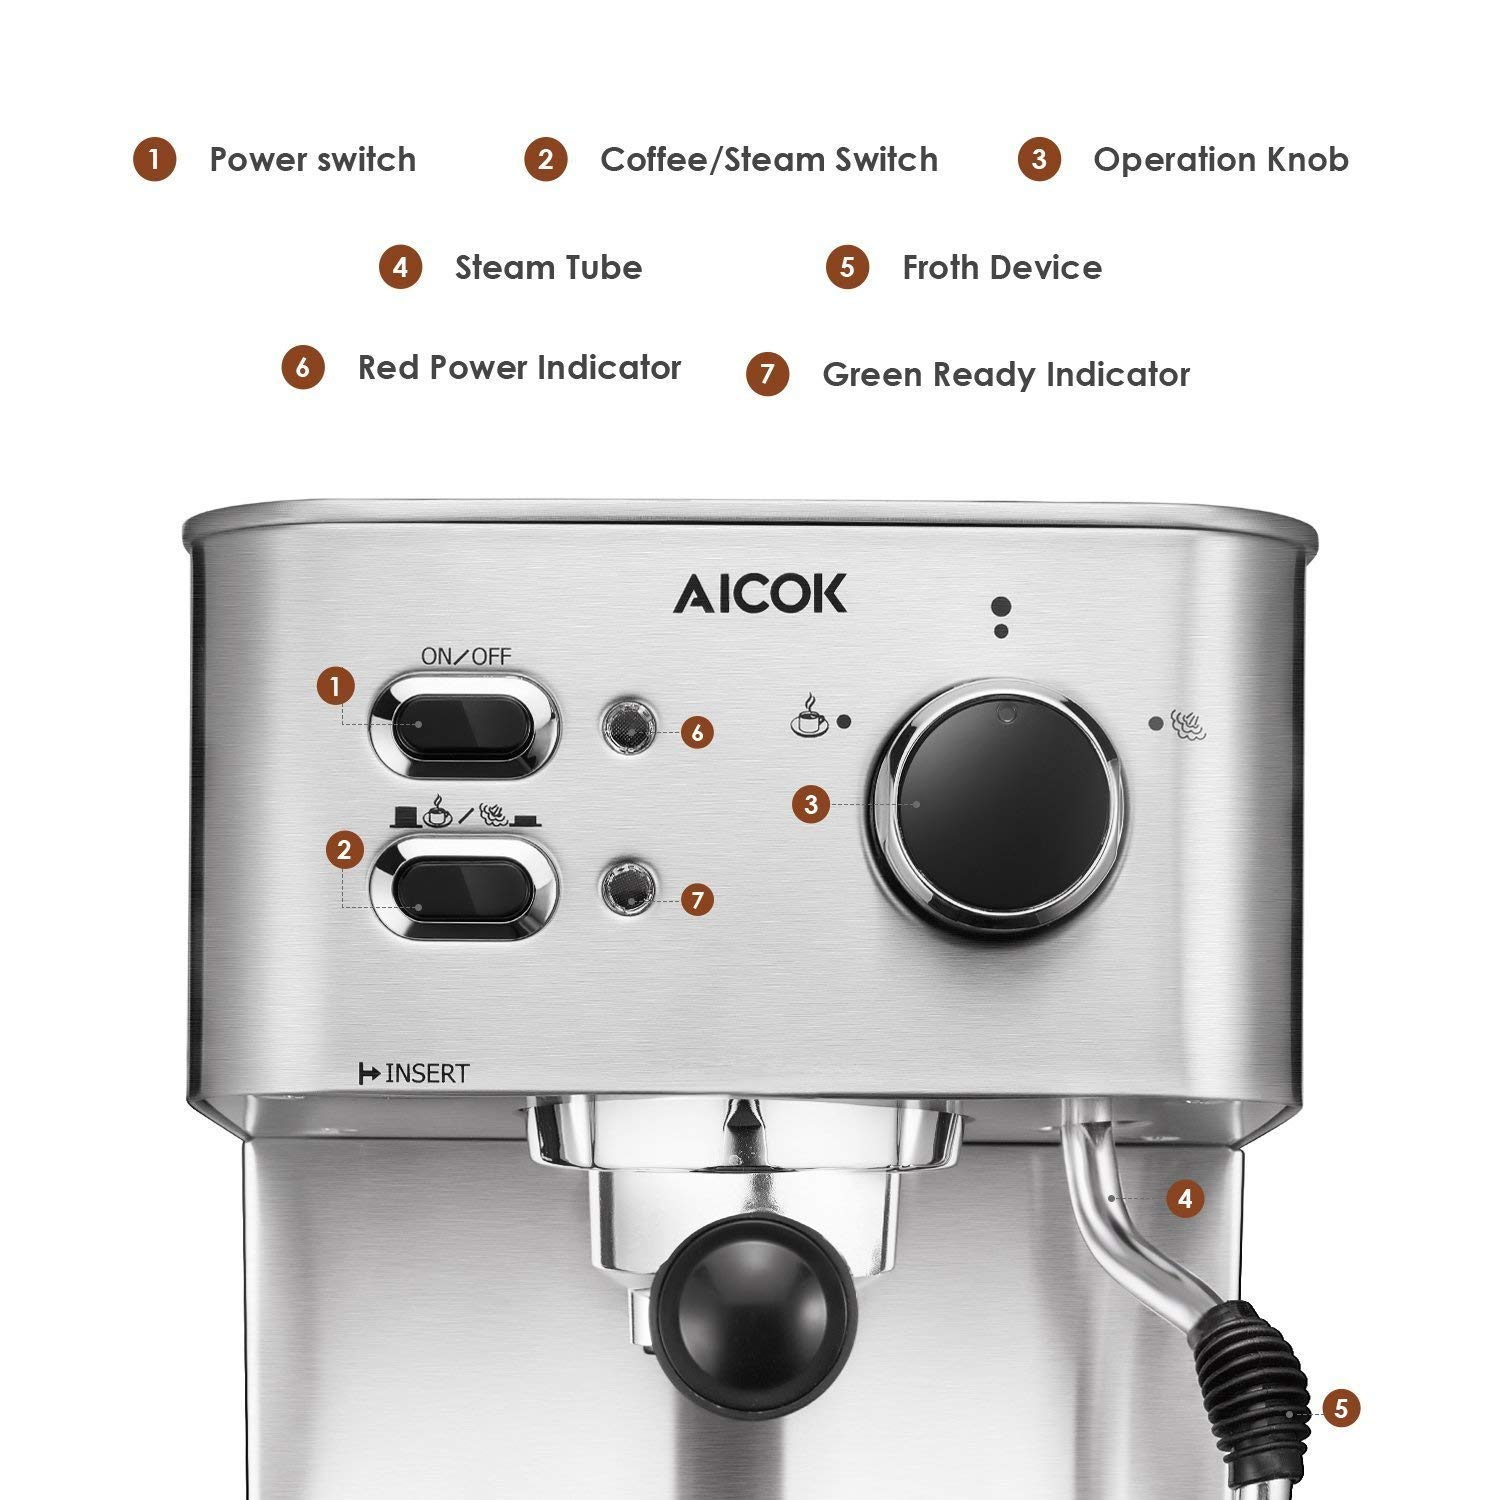 Espresso Machine, Cappuccino Coffee Maker with Milk Steamer Frother, 15 Bar Pump Latte and Moka Machine, Stainless Steel, Warm Top for Cup Placing, 1050W, by AICOK by AICOK (Image #3)